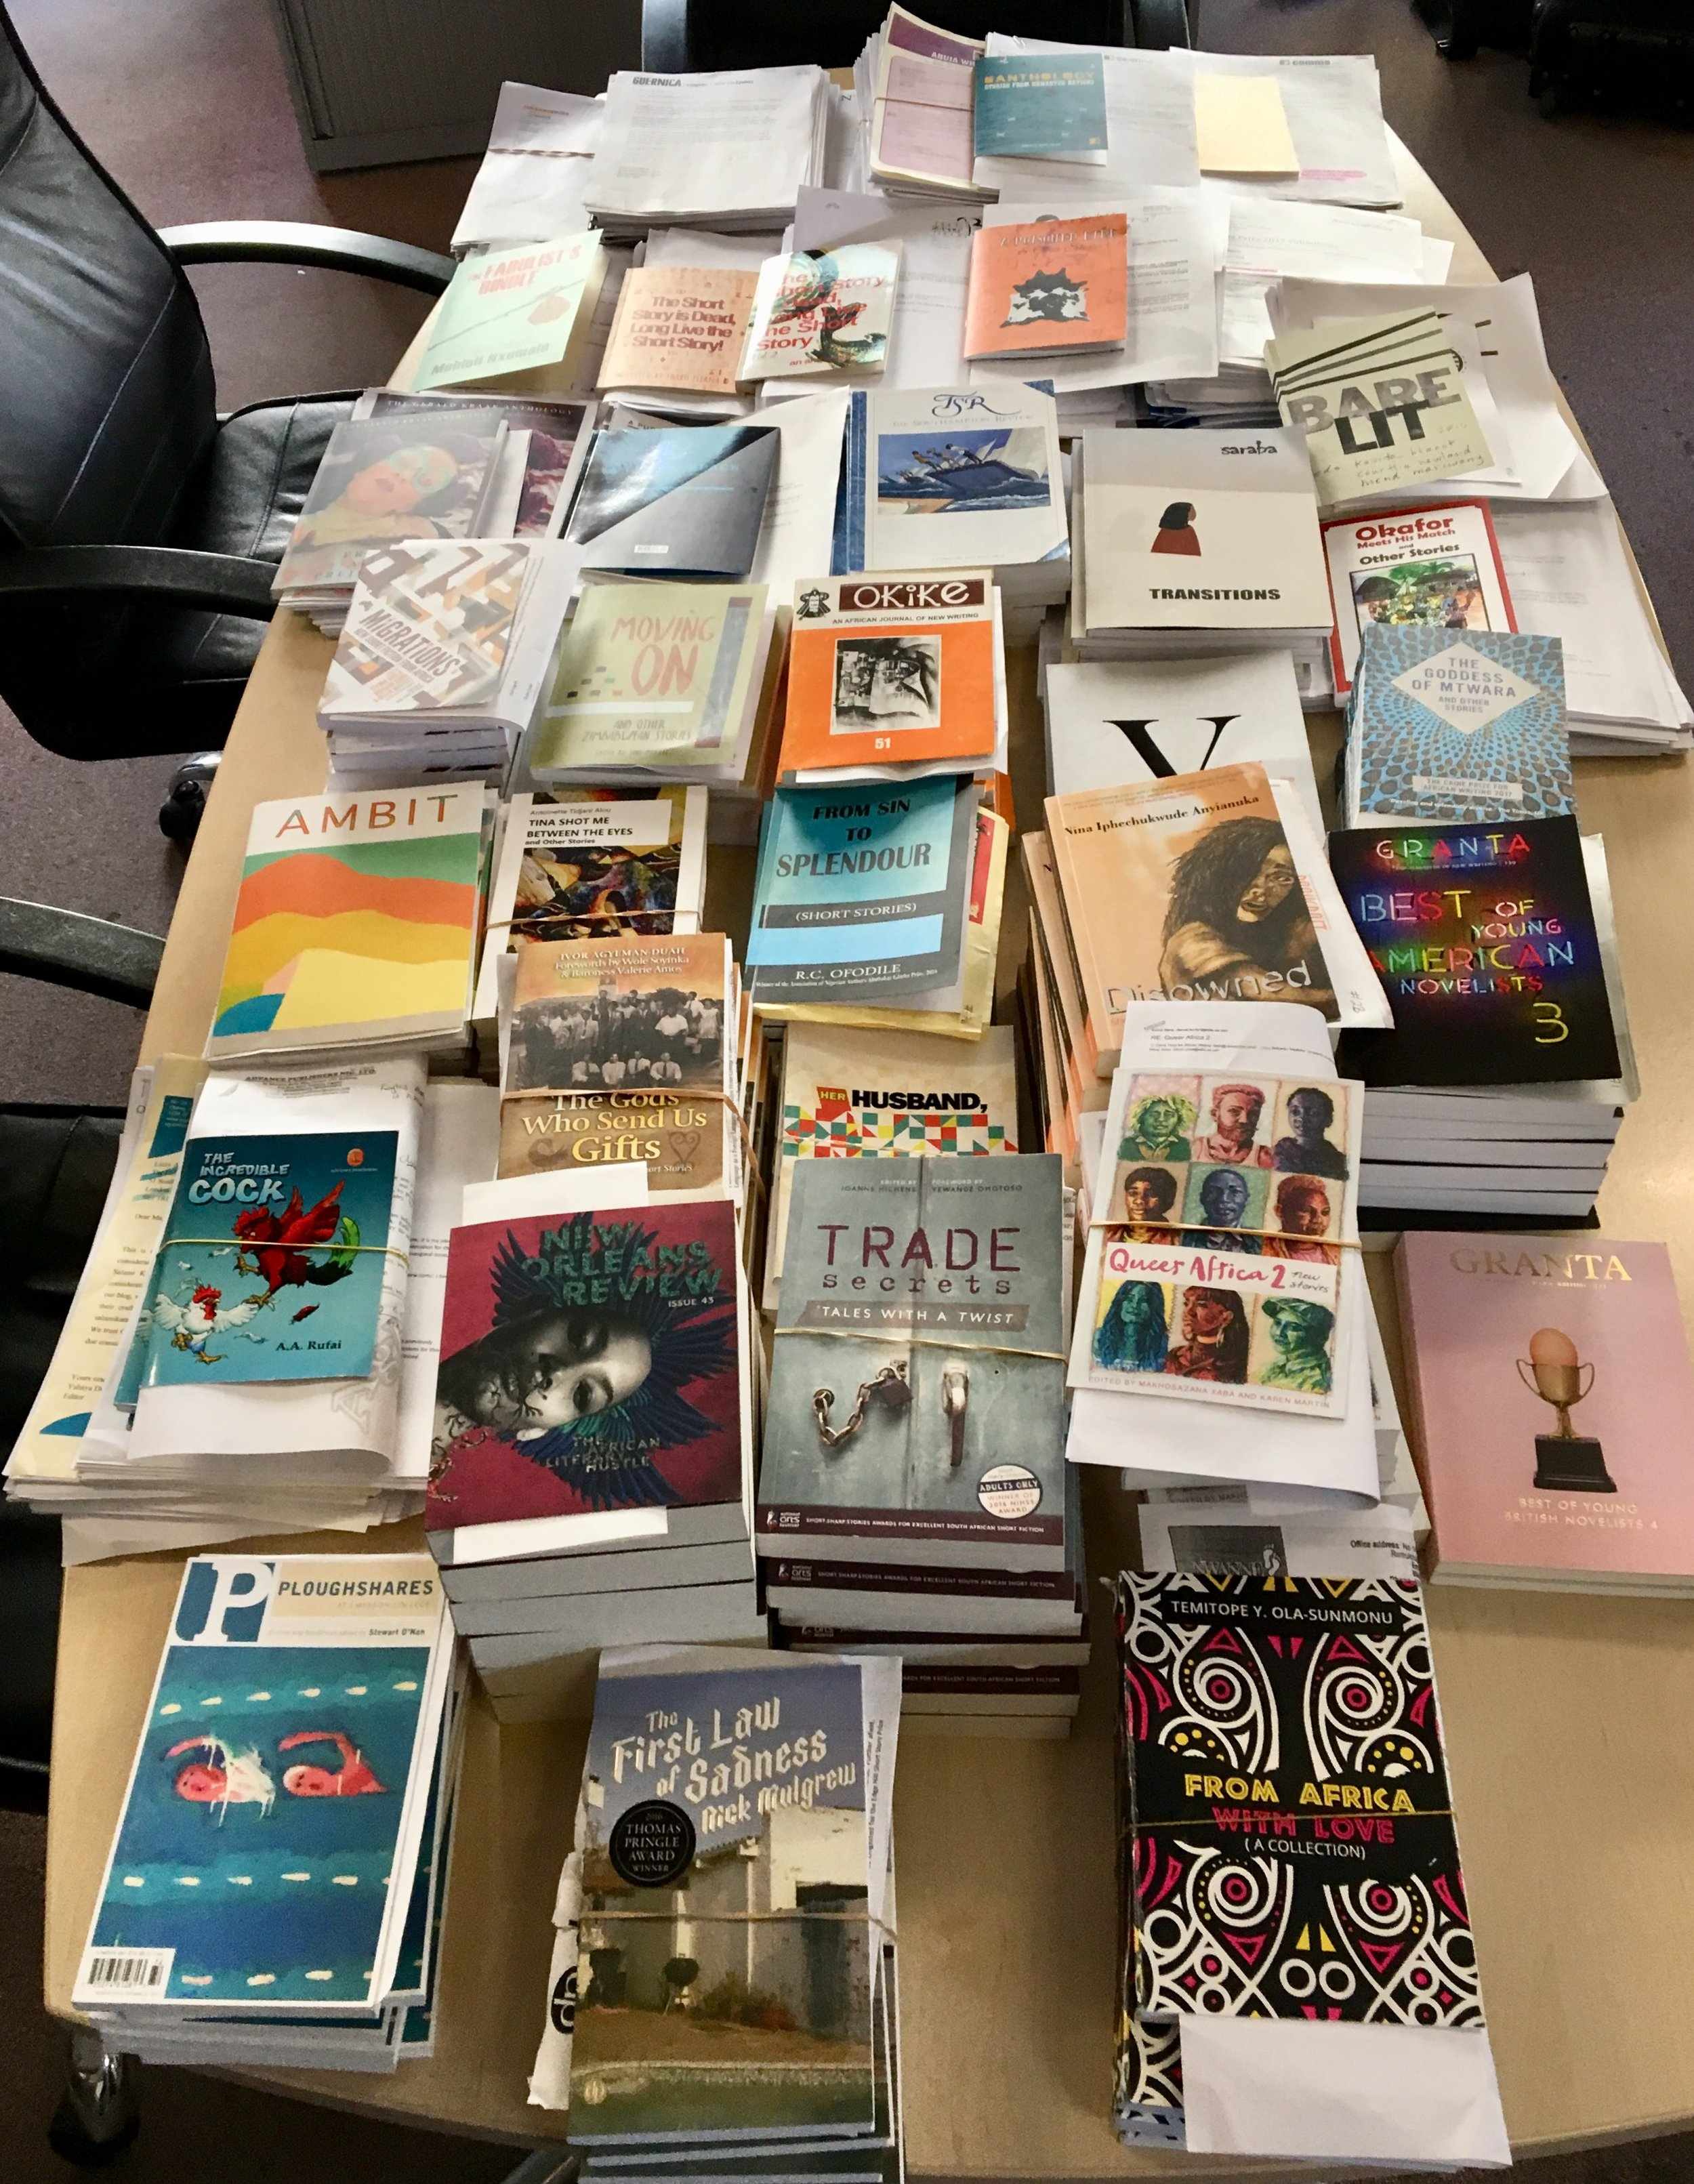 Submissions received for this year's Caine Prize for African Writing – representing 20 African countries